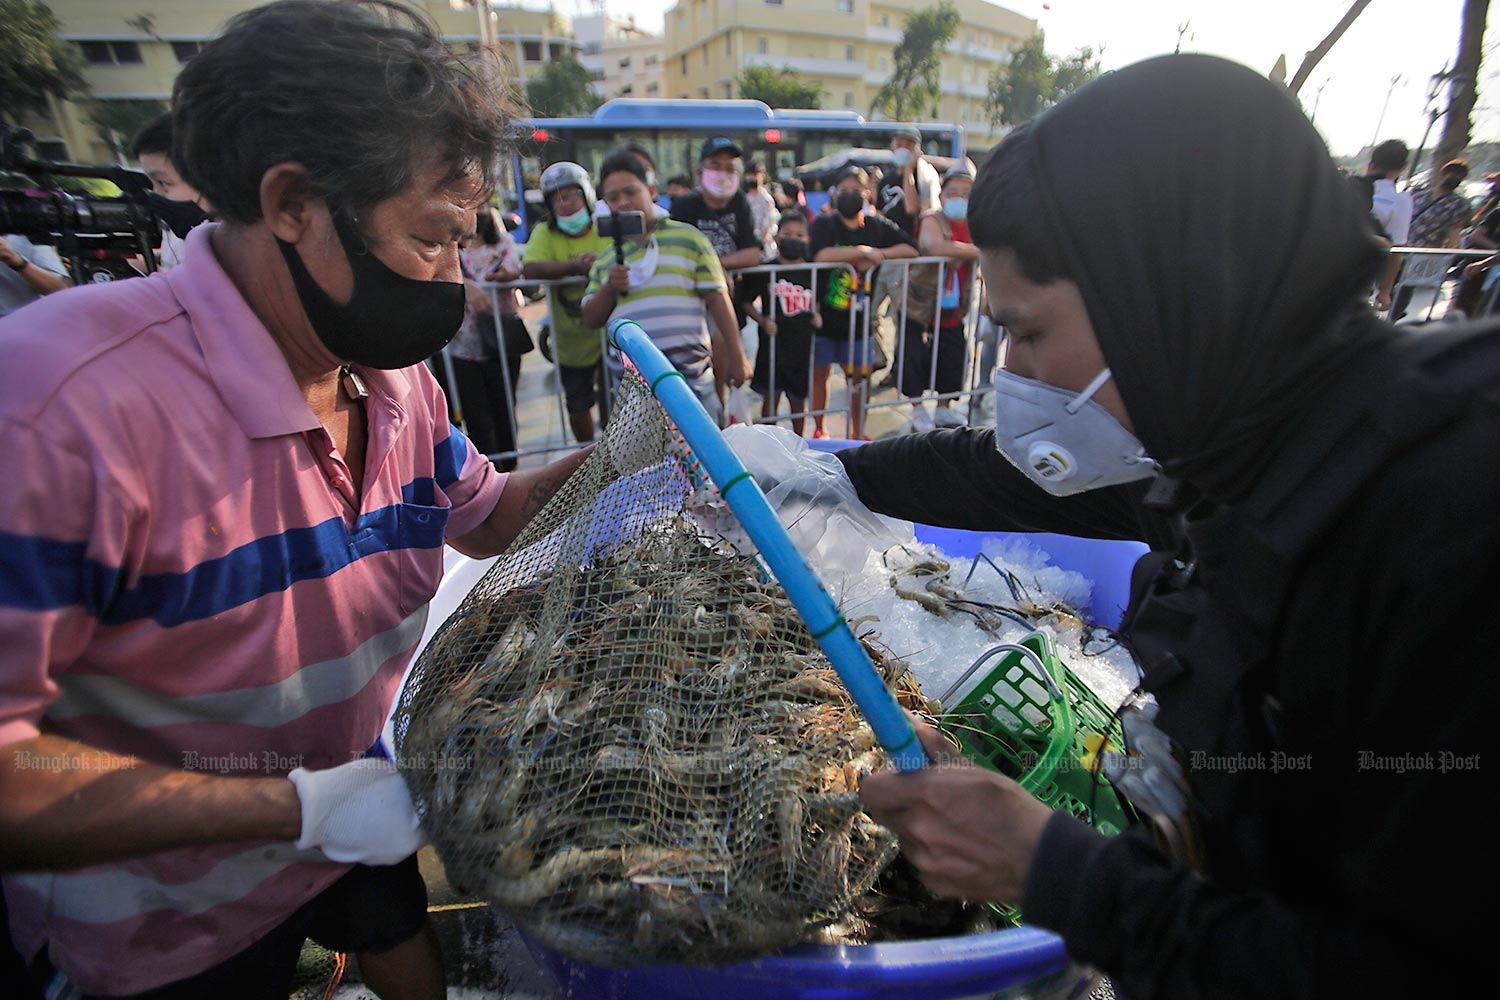 Vendors hawk prawns at a makeshift market organised by anti-government protesters at Kok Wua intersection in Bangkok on Thursday. The stalls were initially set up at the nearby Sanam Luang, but moved to the intersection after pressure from authorities.(Photo by Pornprom Satrabhaya)